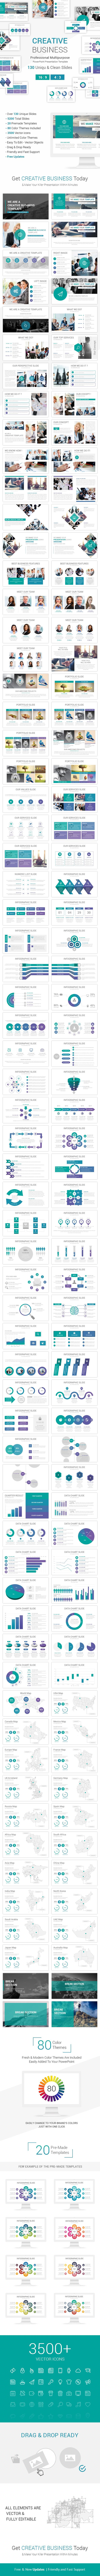 Creative Business PowerPoint Presentation Template - Business PowerPoint Templates